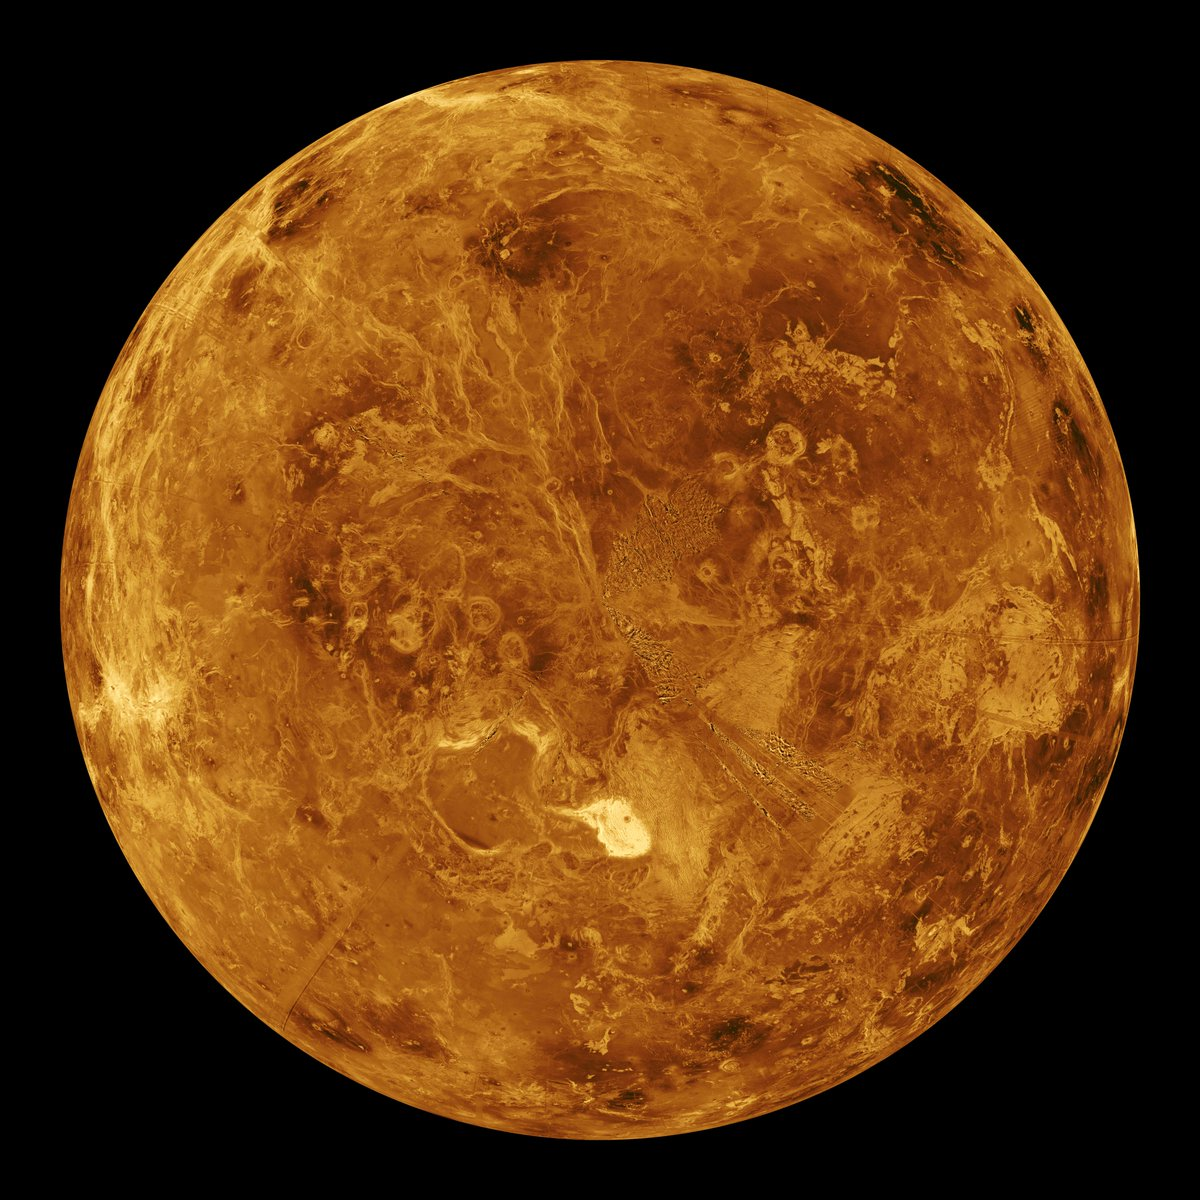 In this new episode of the #GravityAssist podcast, our Chief Scientist Jim Green is joined by Director of Planetary Science Lori Glaze to discuss three upcoming missions to planet Venus and their excitement for the science to come!   🎙️ Check it out now: https://t.co/aK7lHmsgvl https://t.co/9k7zT9Rhfm